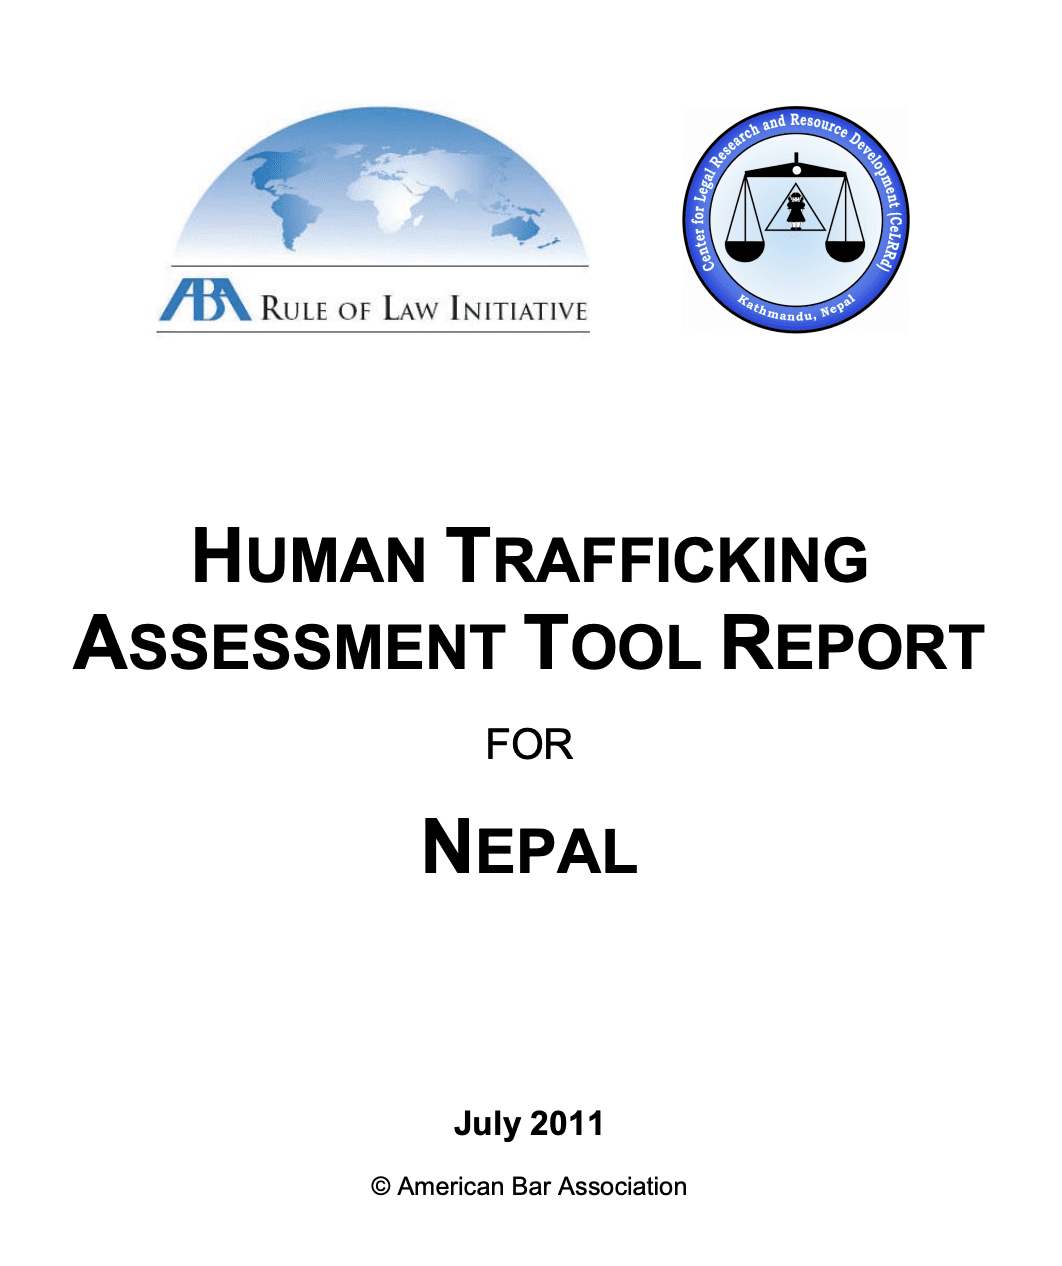 Human Trafficking Assessment Tool Report for Nepal